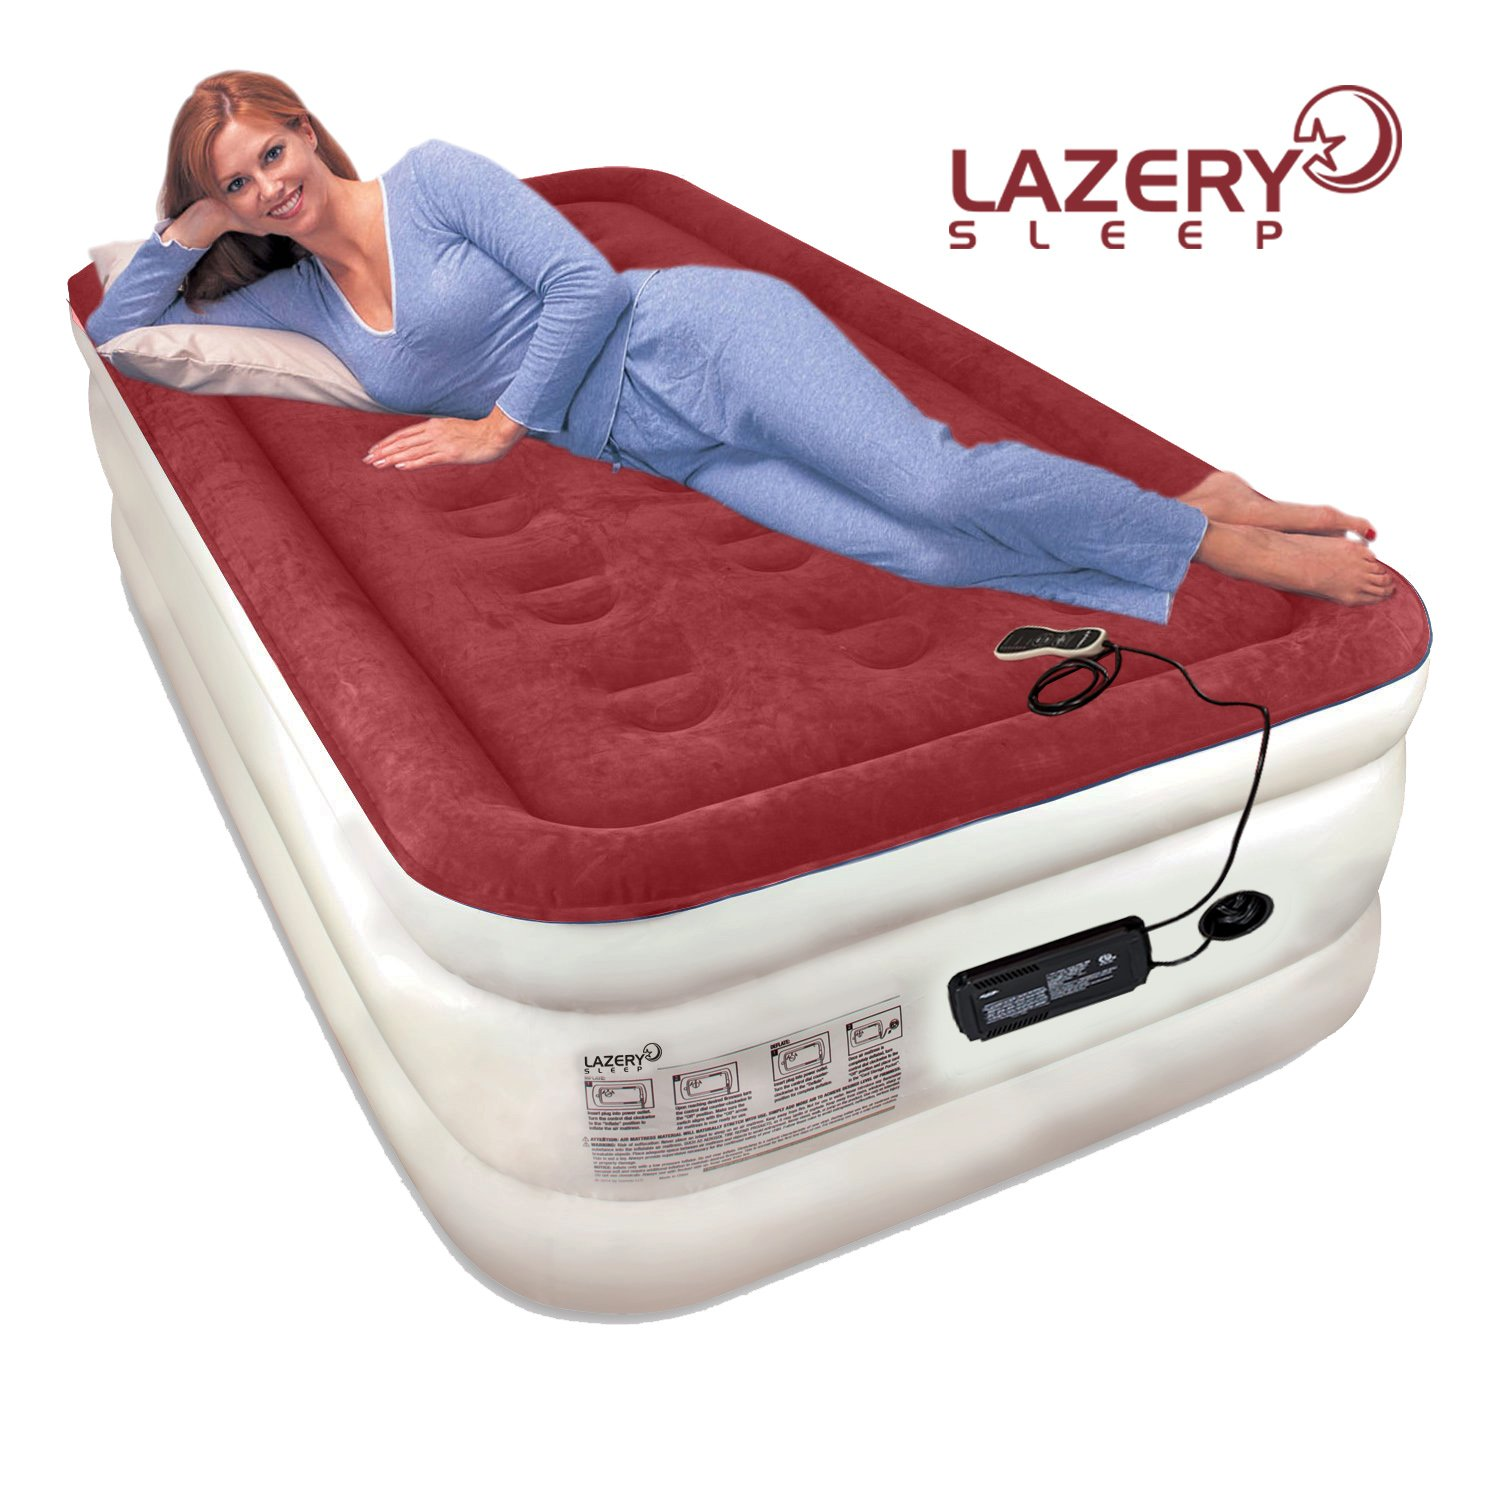 "Lazery Sleep Air Mattress Airbed with Built-in Electric 7 Settings Remote LED Pump - Twin 74"" x 39"" x 19"""